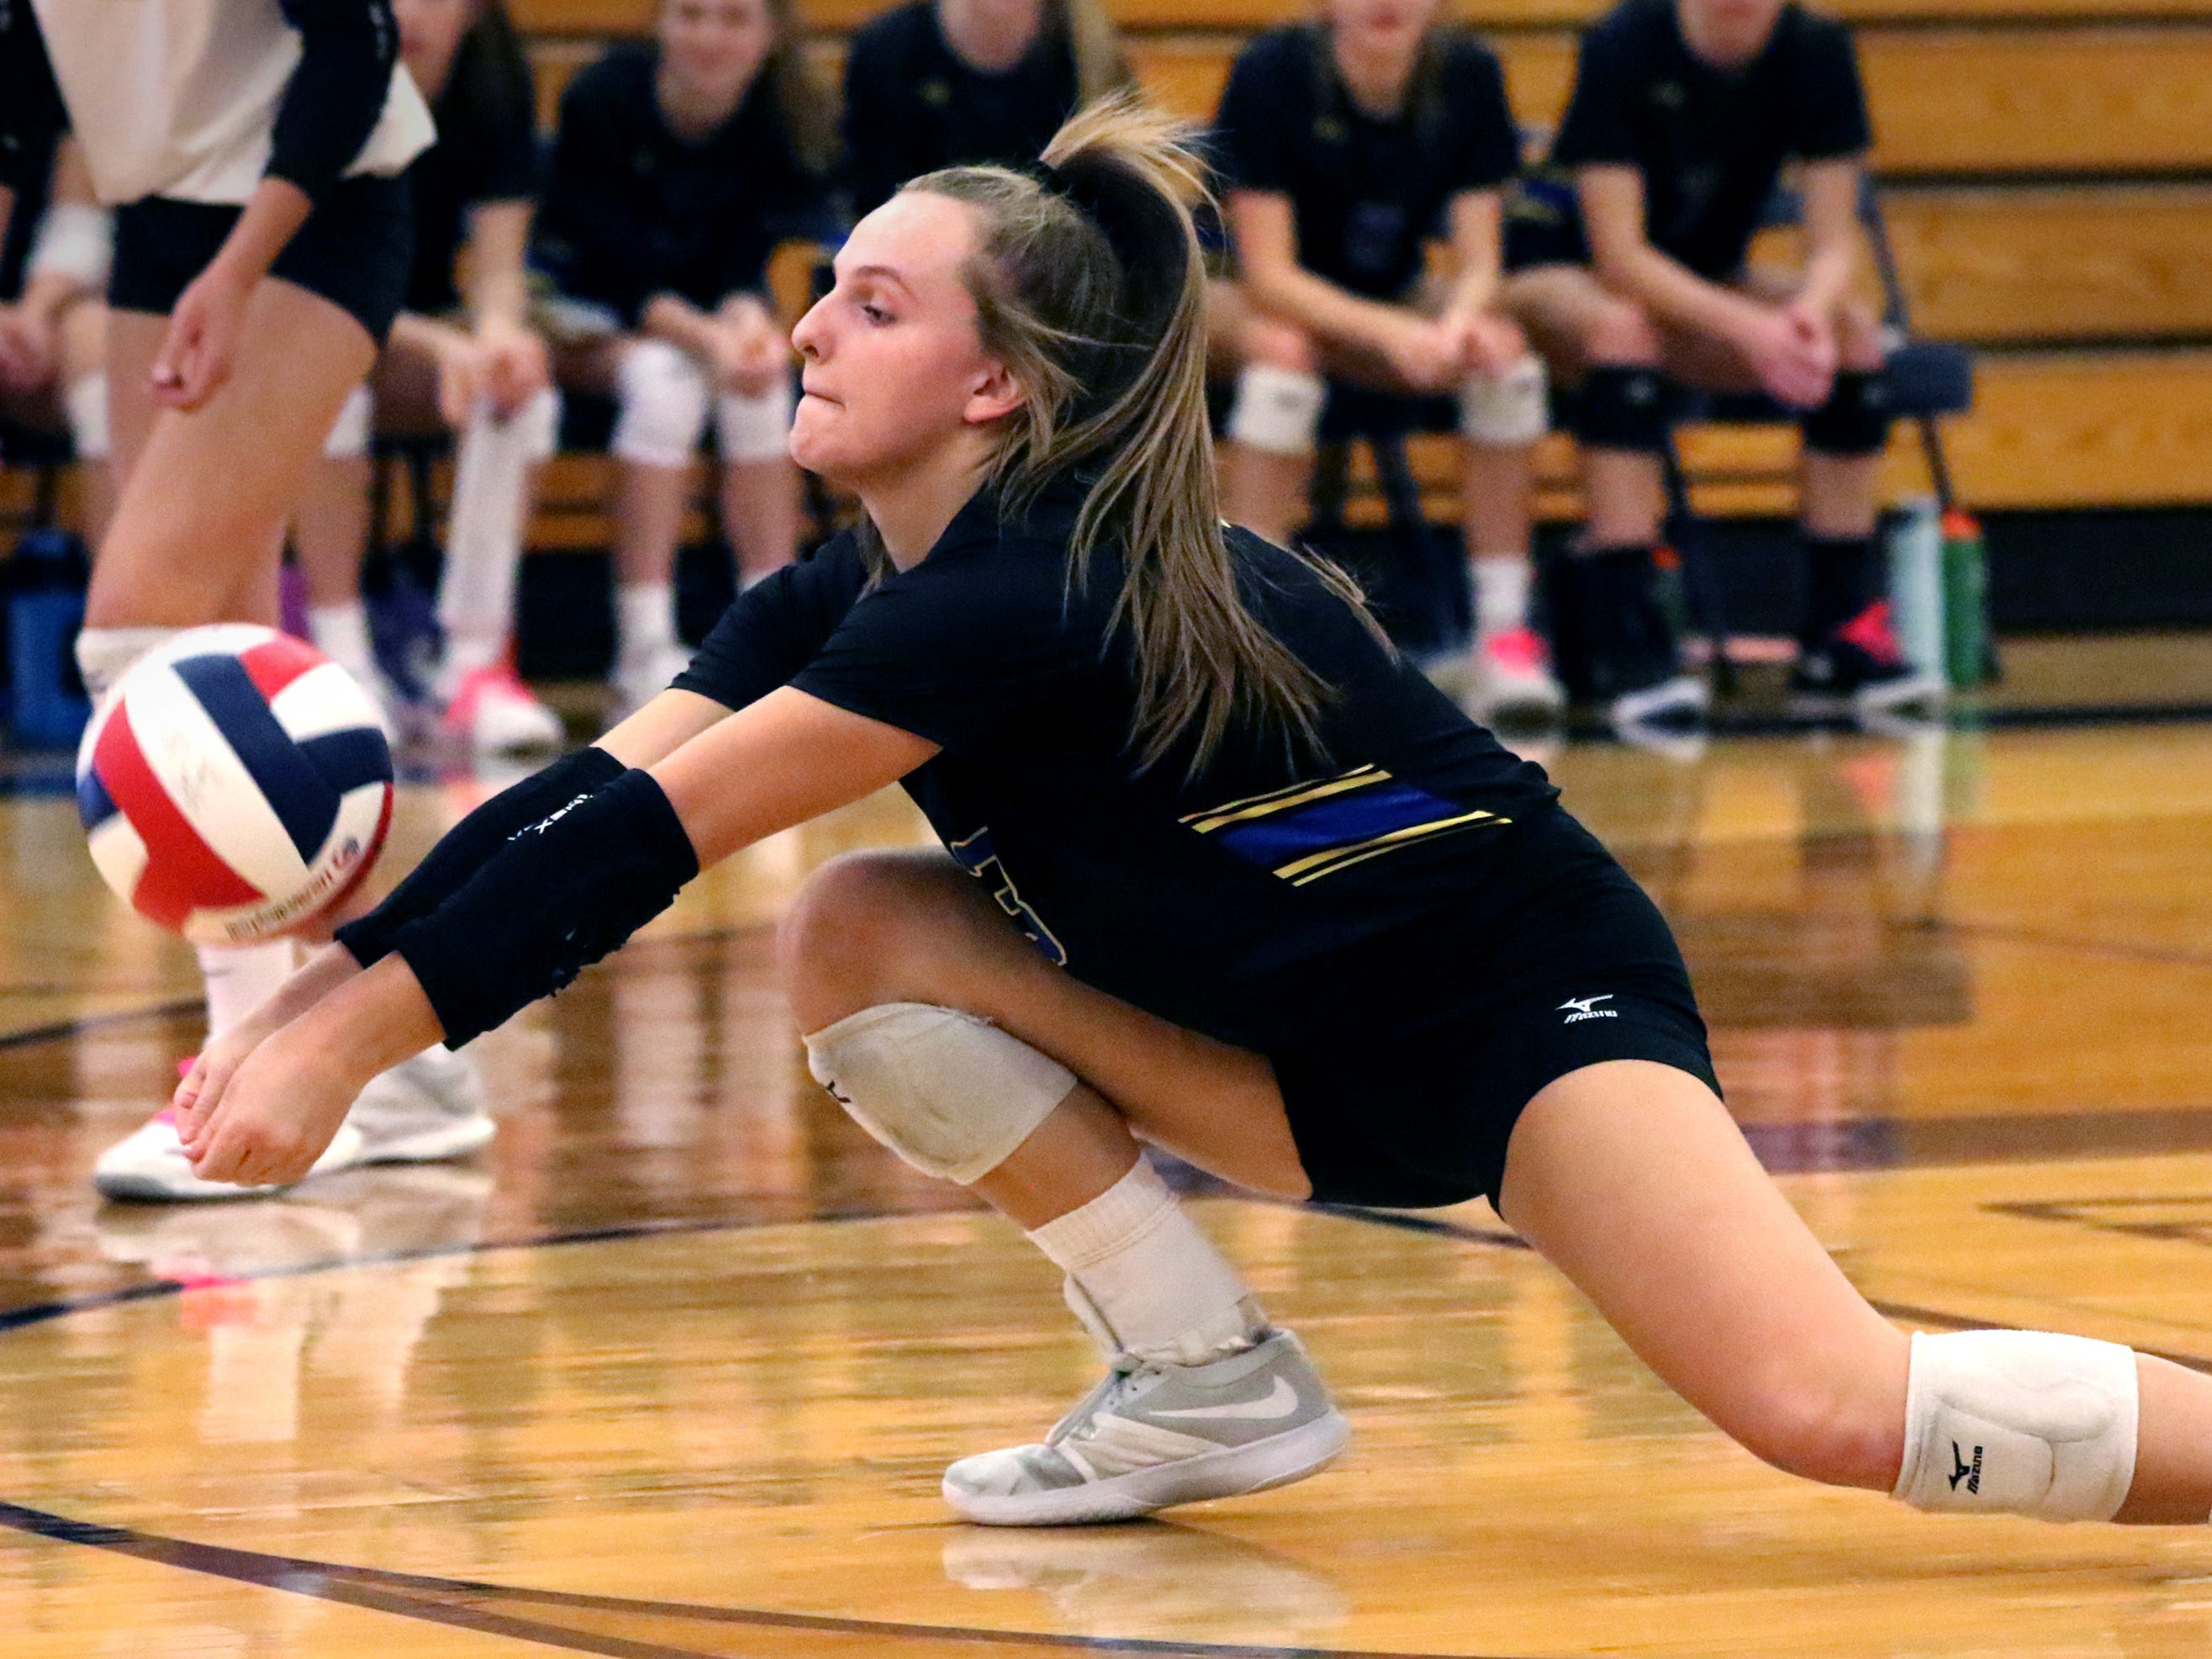 Mukwonago's Erin Powers digs a Waukesha West serve during a WIAA Division 1 sectional final at Kettle Moraine on Oct. 27. Mukwonago's season came to an end after falling in four sets to the Wolverines.